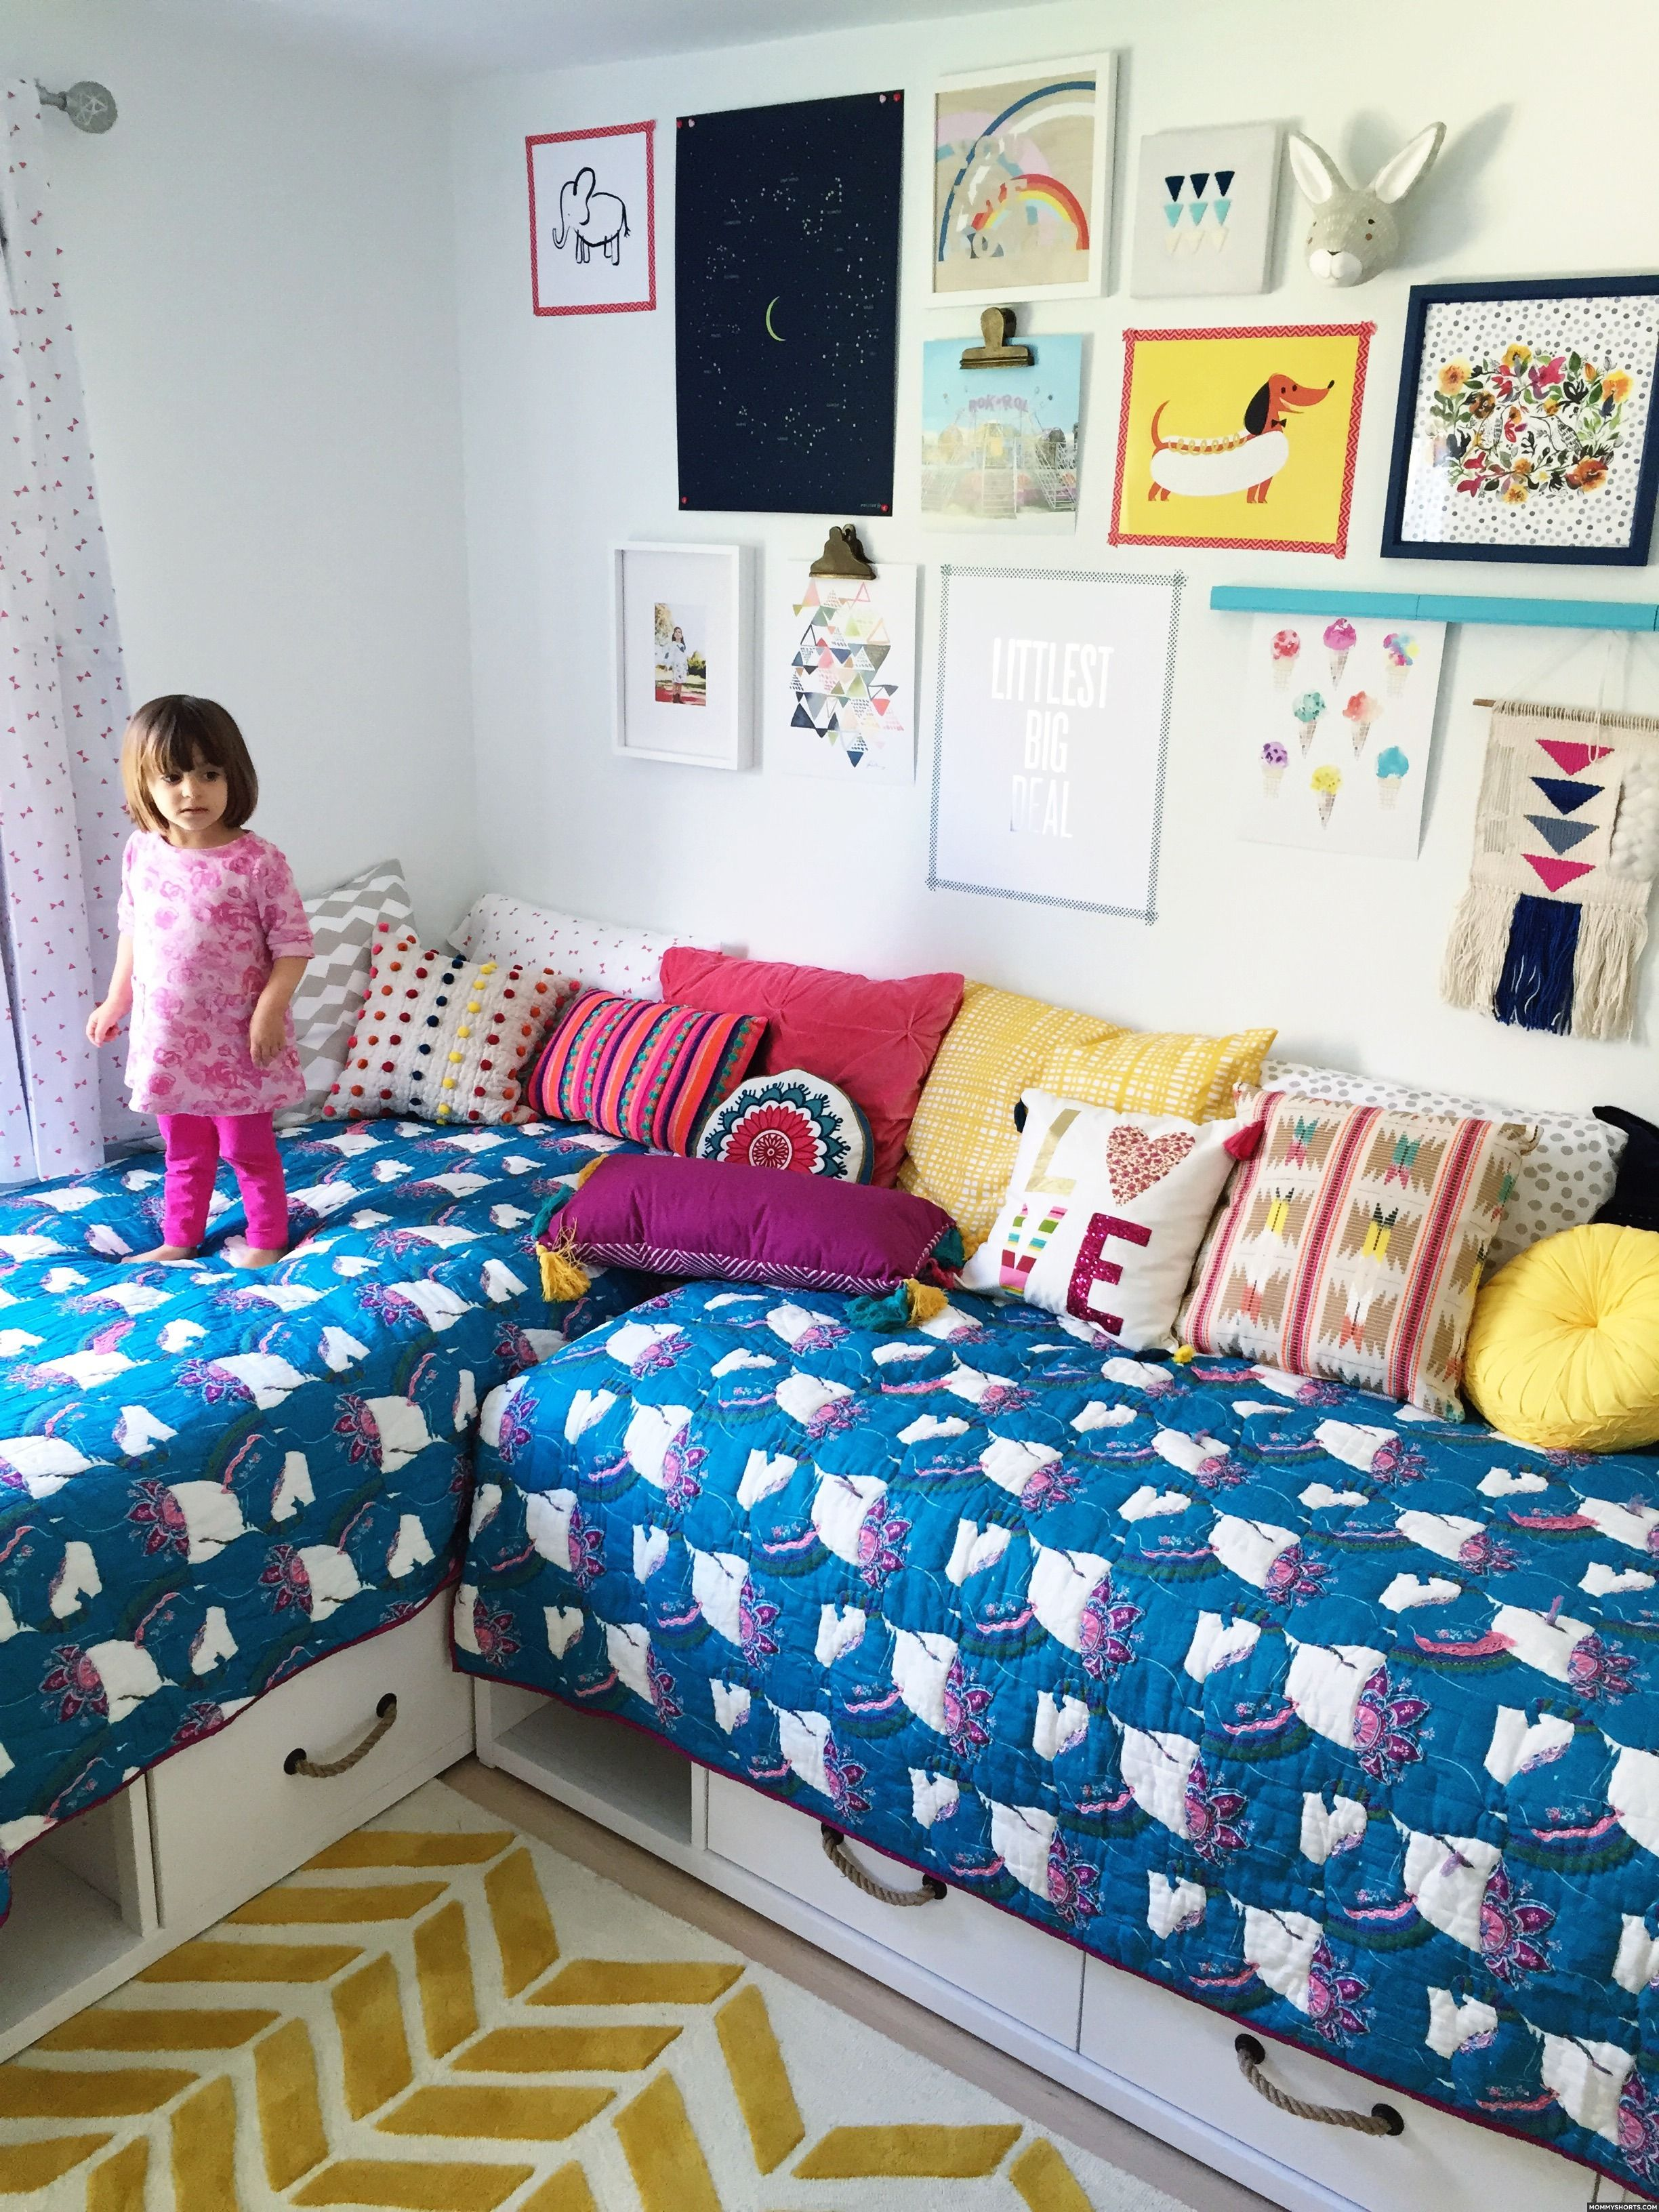 Kids bedrooms for two - Awesome Way To Do A Kids Shared Bedroom Need For My Boys Love This Modern Boho Shared Bedroom For Two Girls